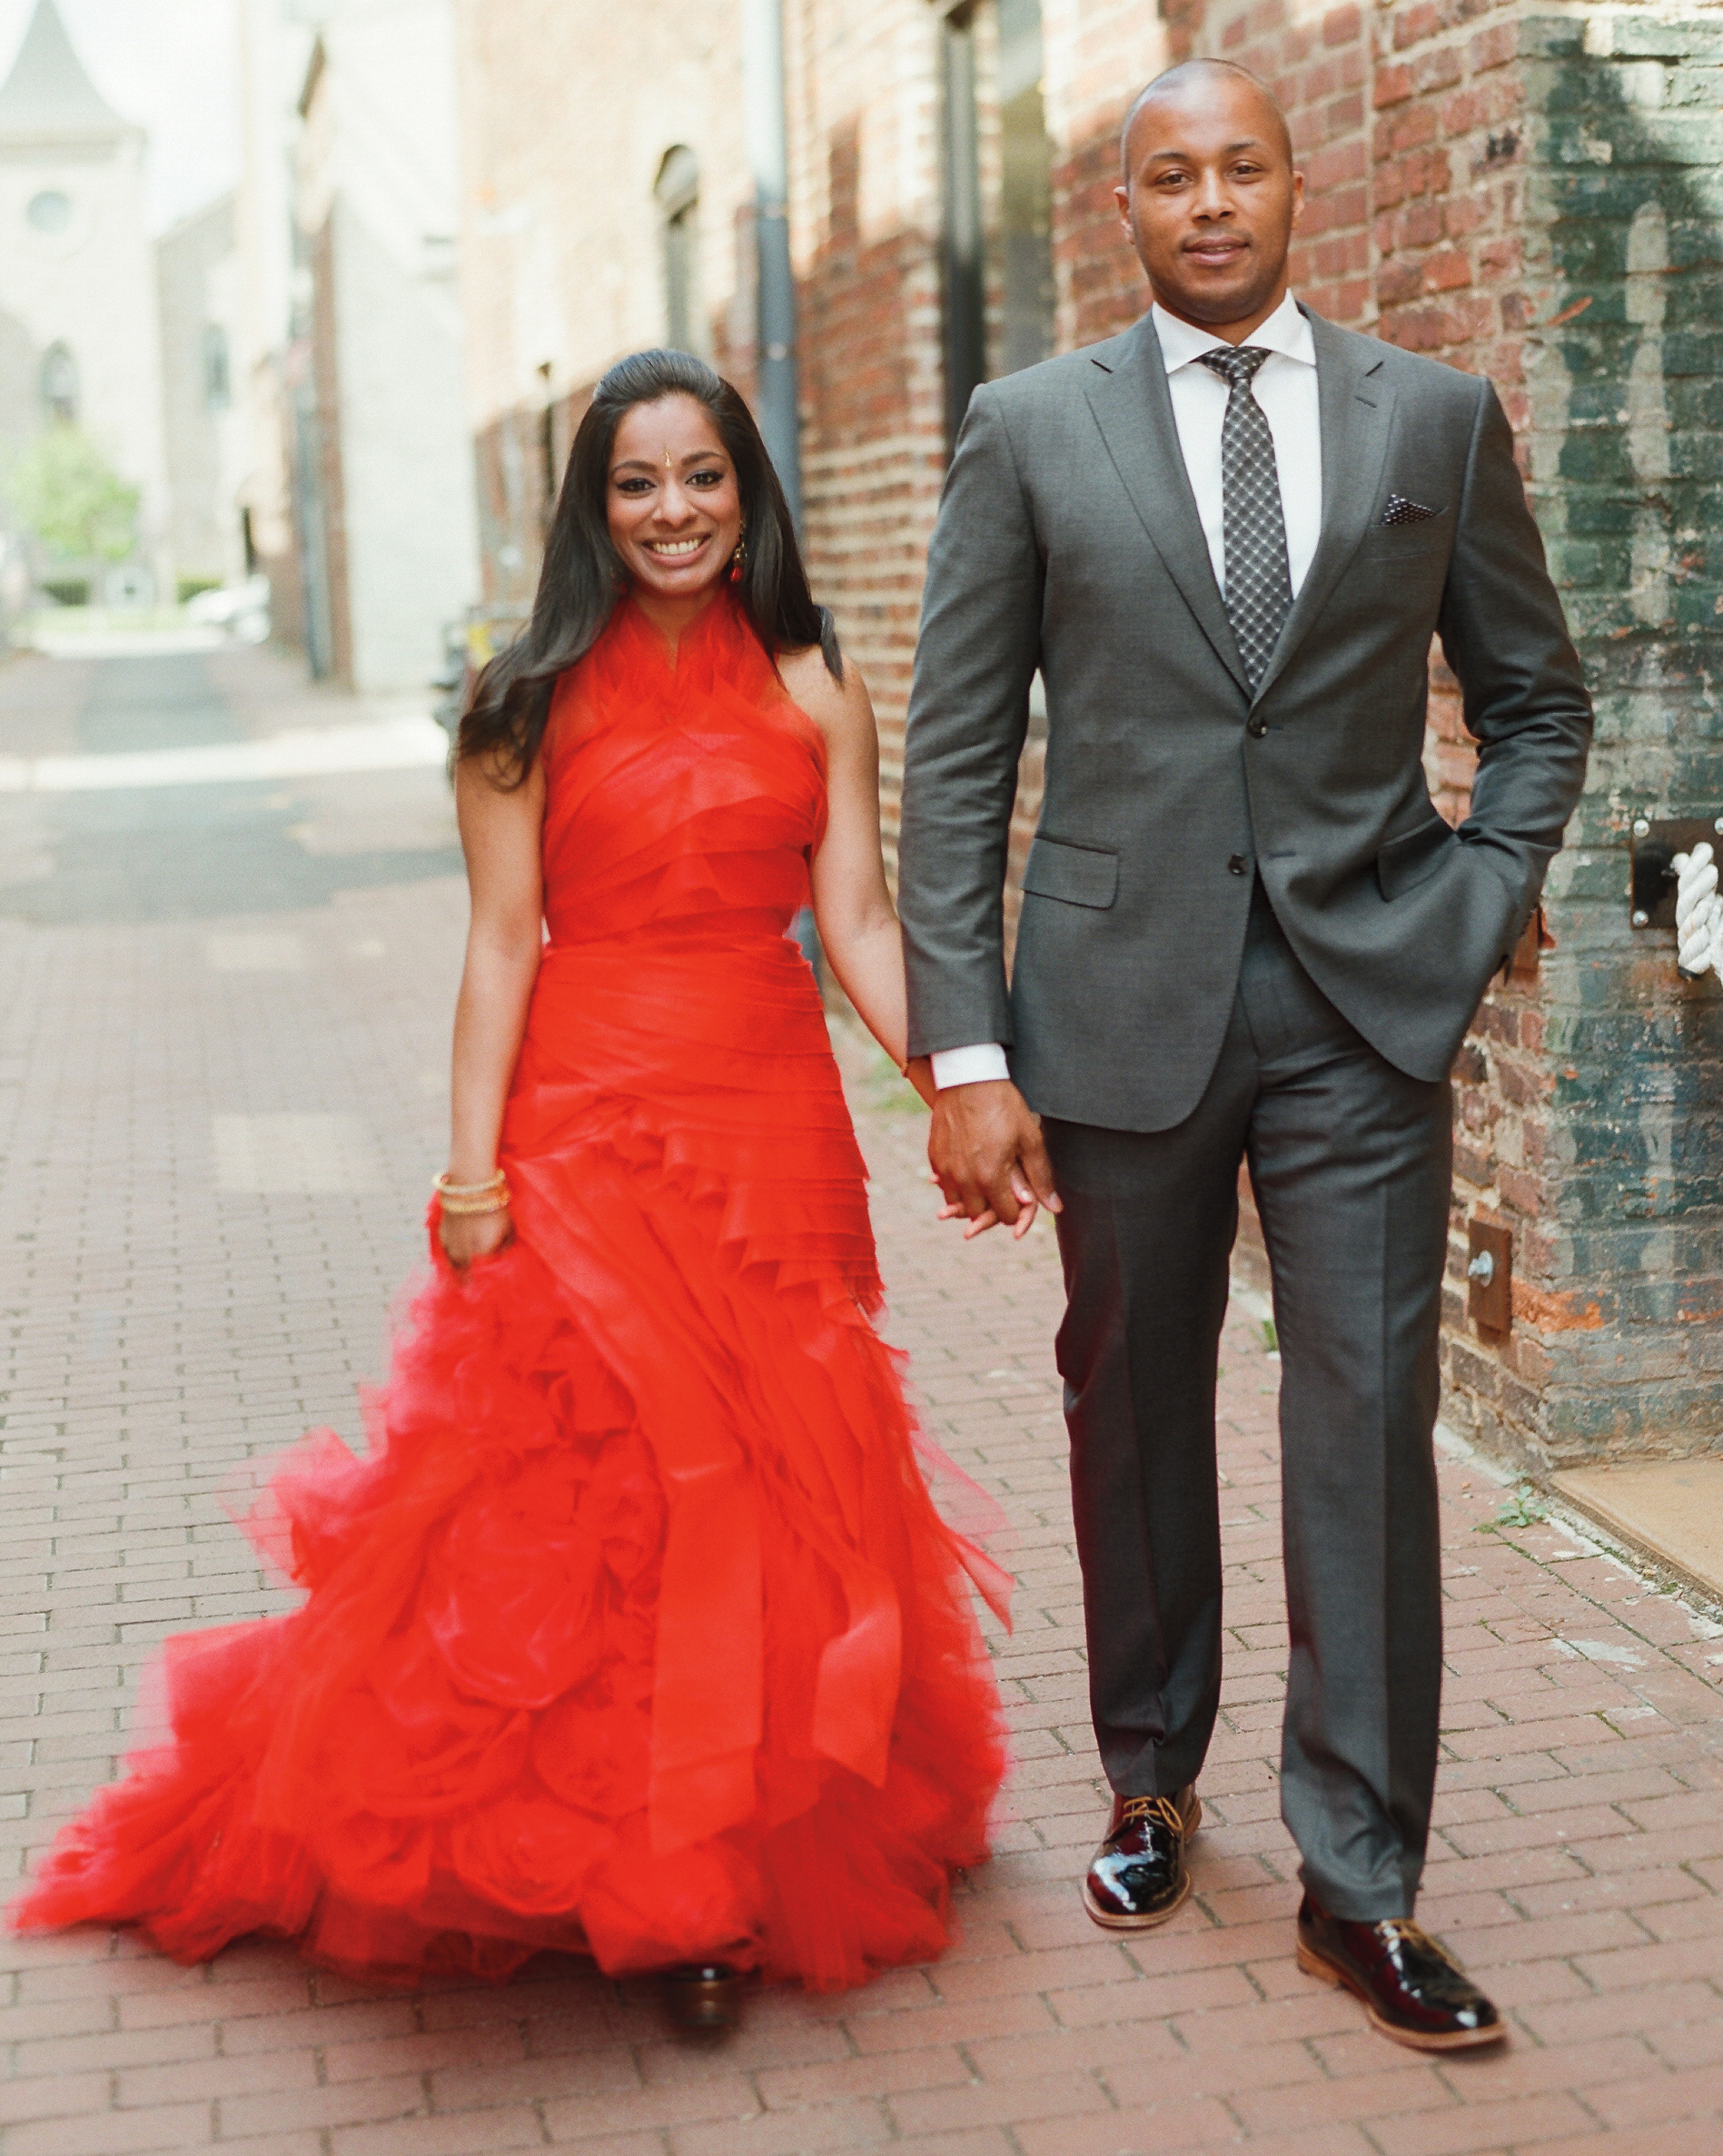 Red Wedding Dresses.7 Red Wedding Dresses That Ll Leave You Re Thinking White Martha